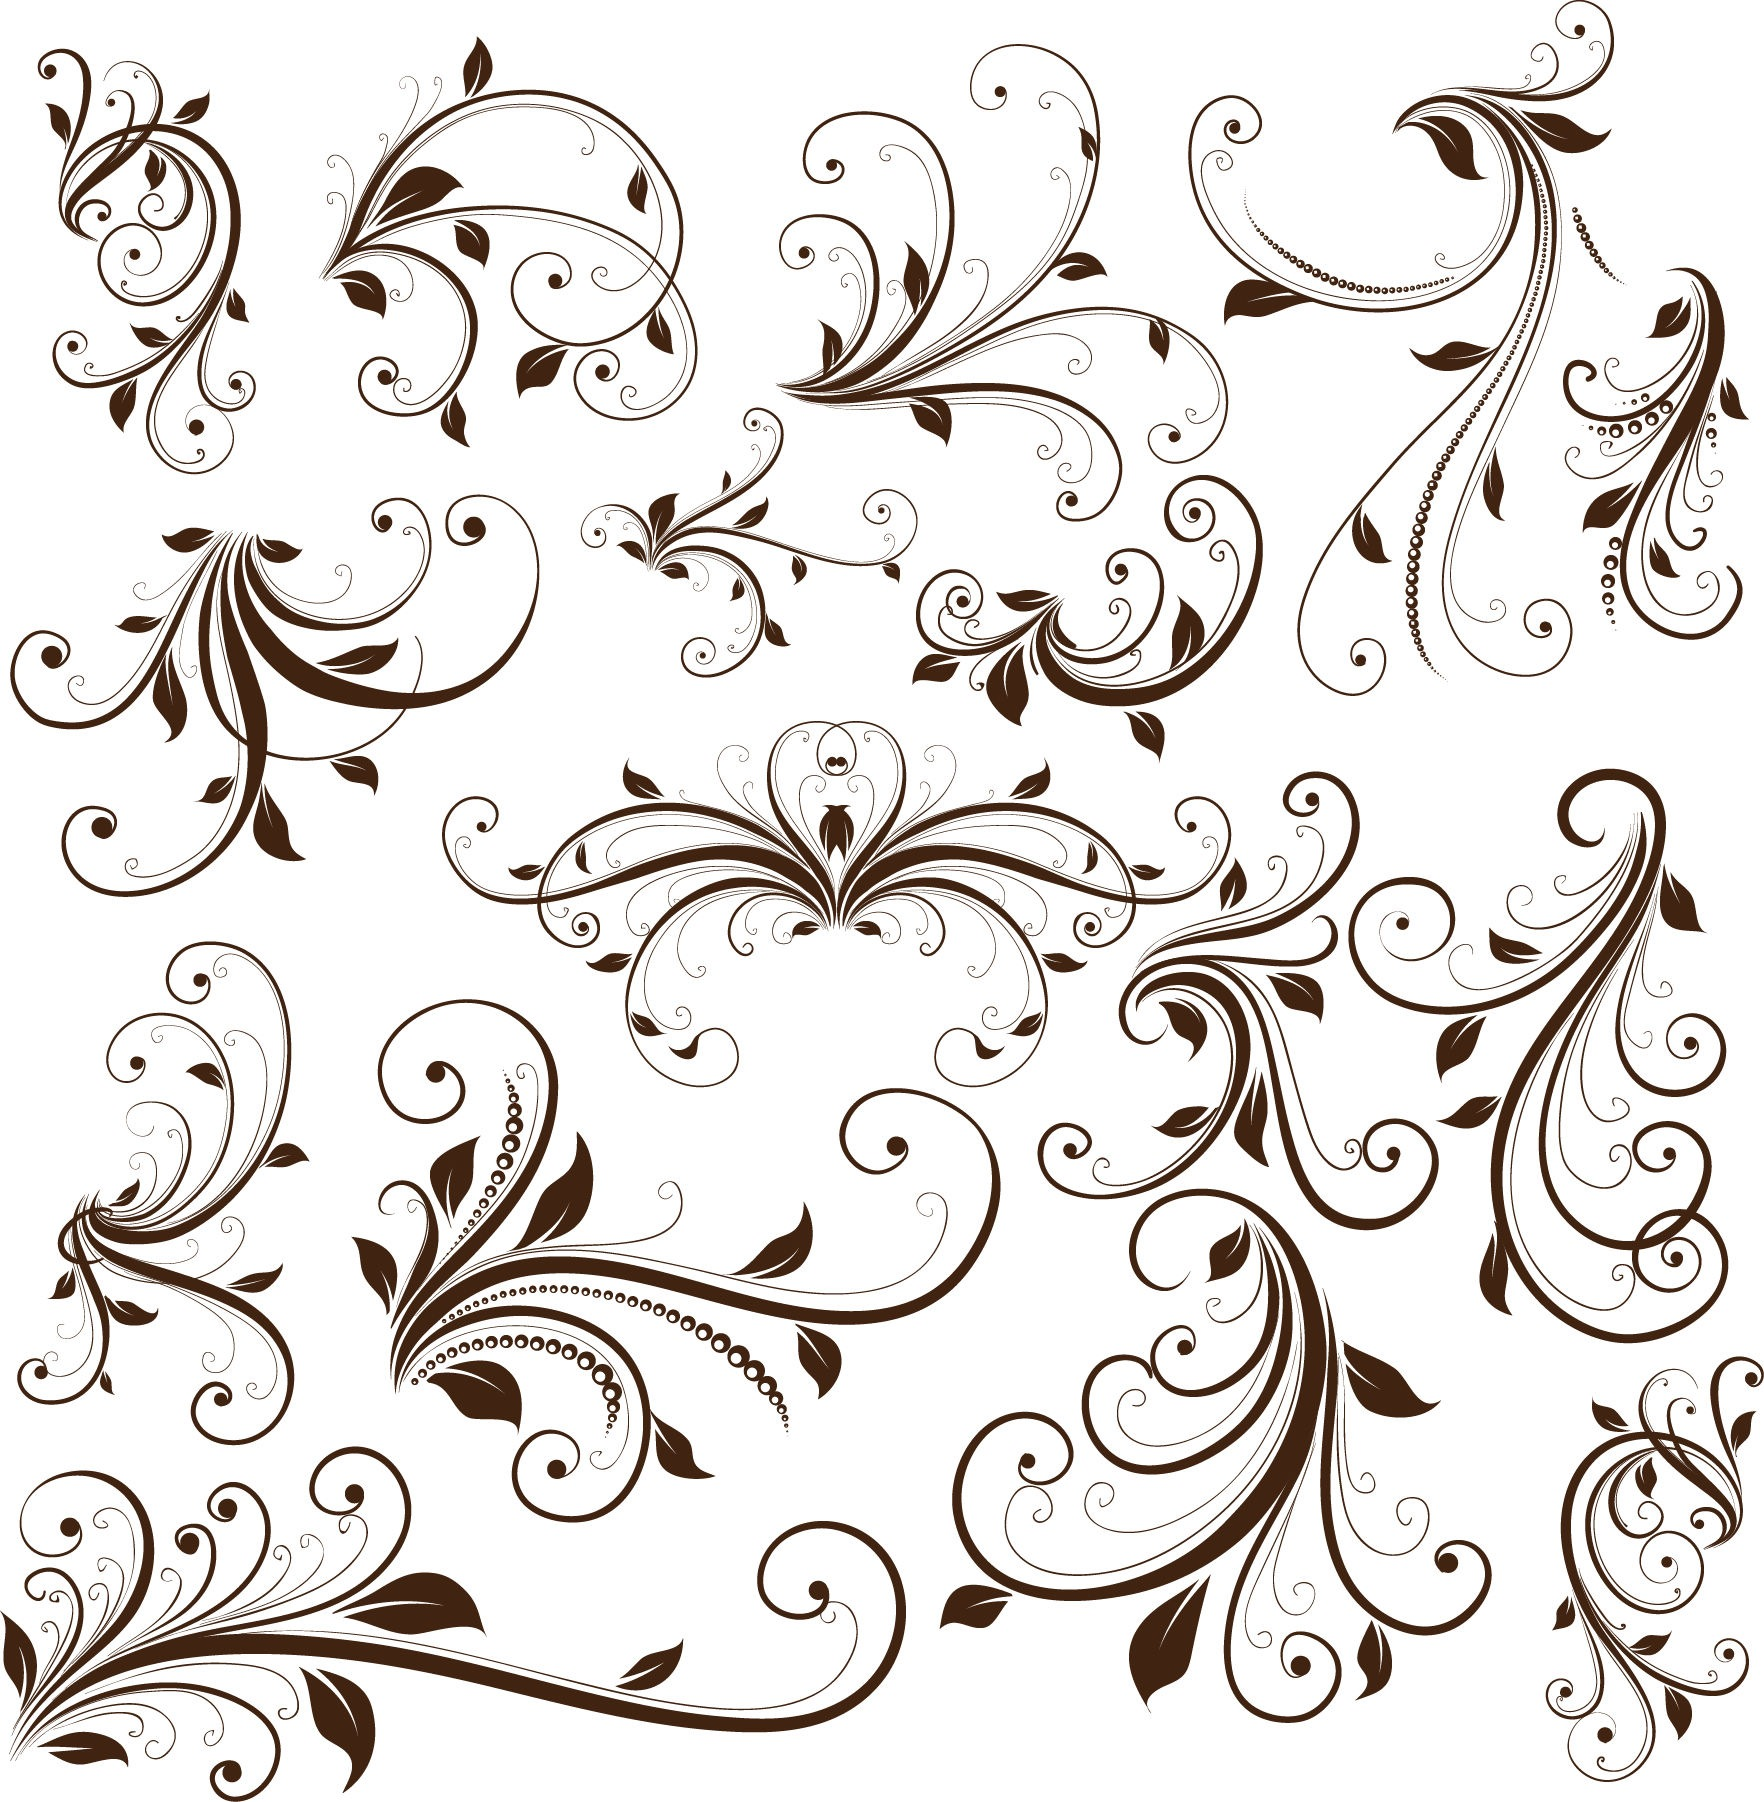 13 Decorative Swirl Vector Images